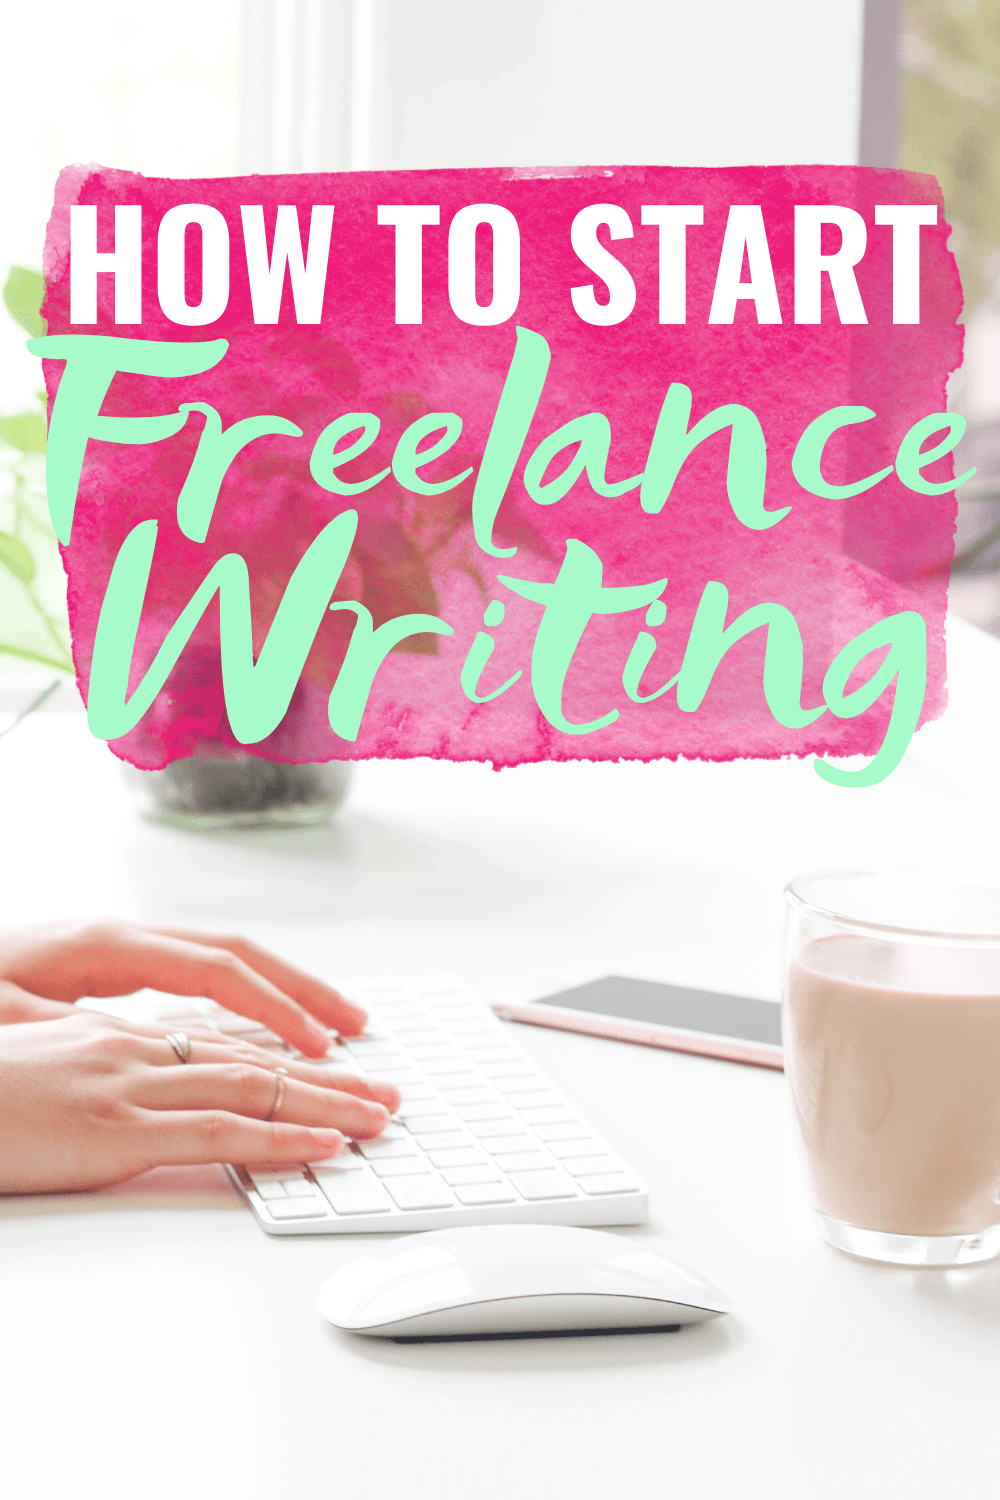 HOW TO START FREELANCE WRITING | Freelance Writing For Beginners - Sharing my journey as a freelance writer, as well as some tips, tricks and advice for fellow freelancers. | Freelance Writing For Beginners - Freelance Writing Jobs - Writing Tips - Freelance Writing Jobs - Freelance Writing Online - Freelance Writing